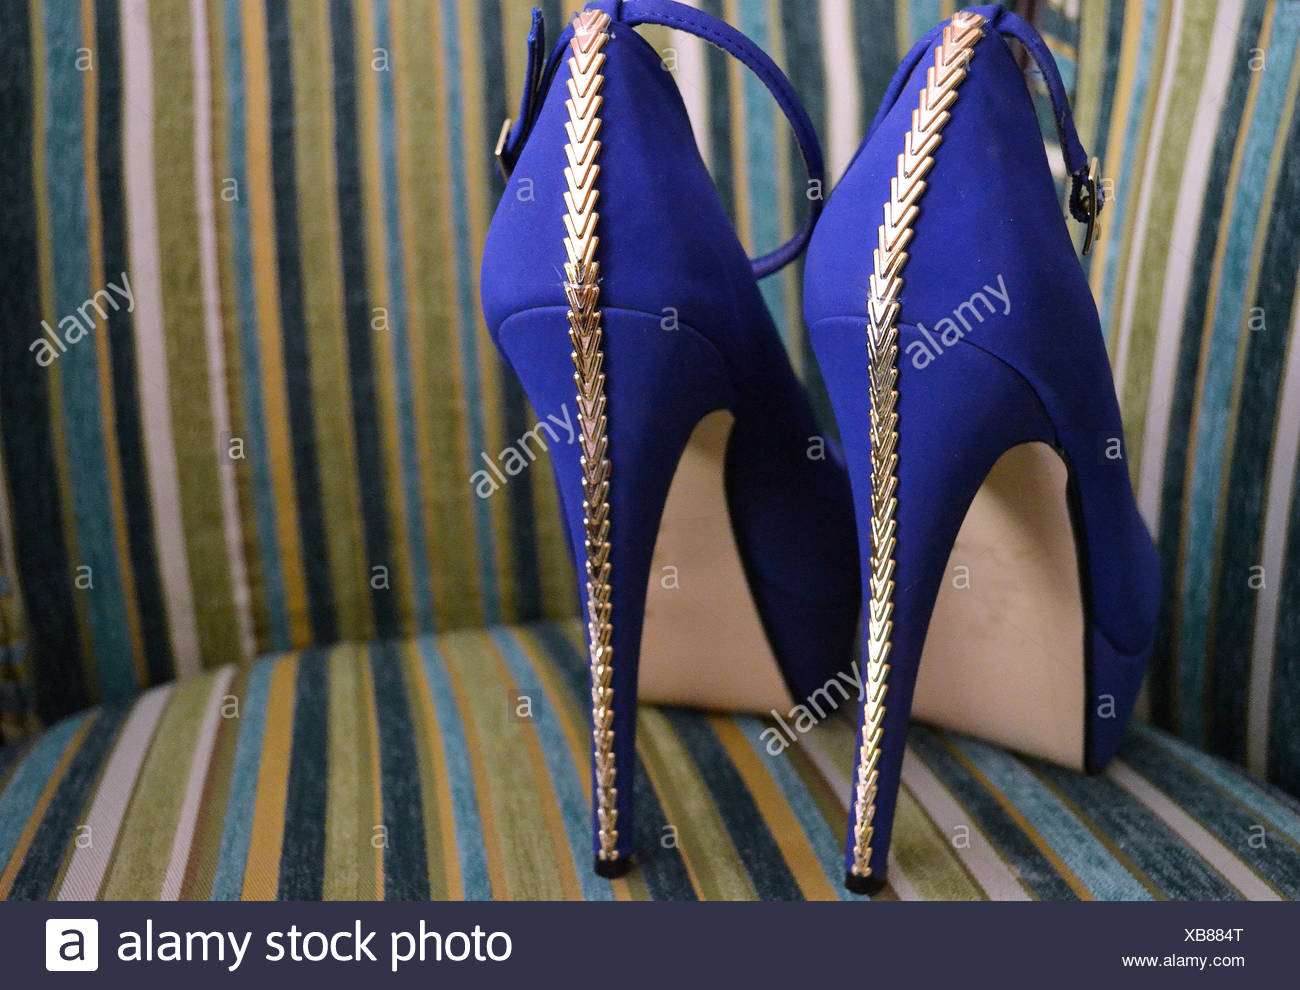 Close-Up Of Blue High Heels In Chair - Stock Image